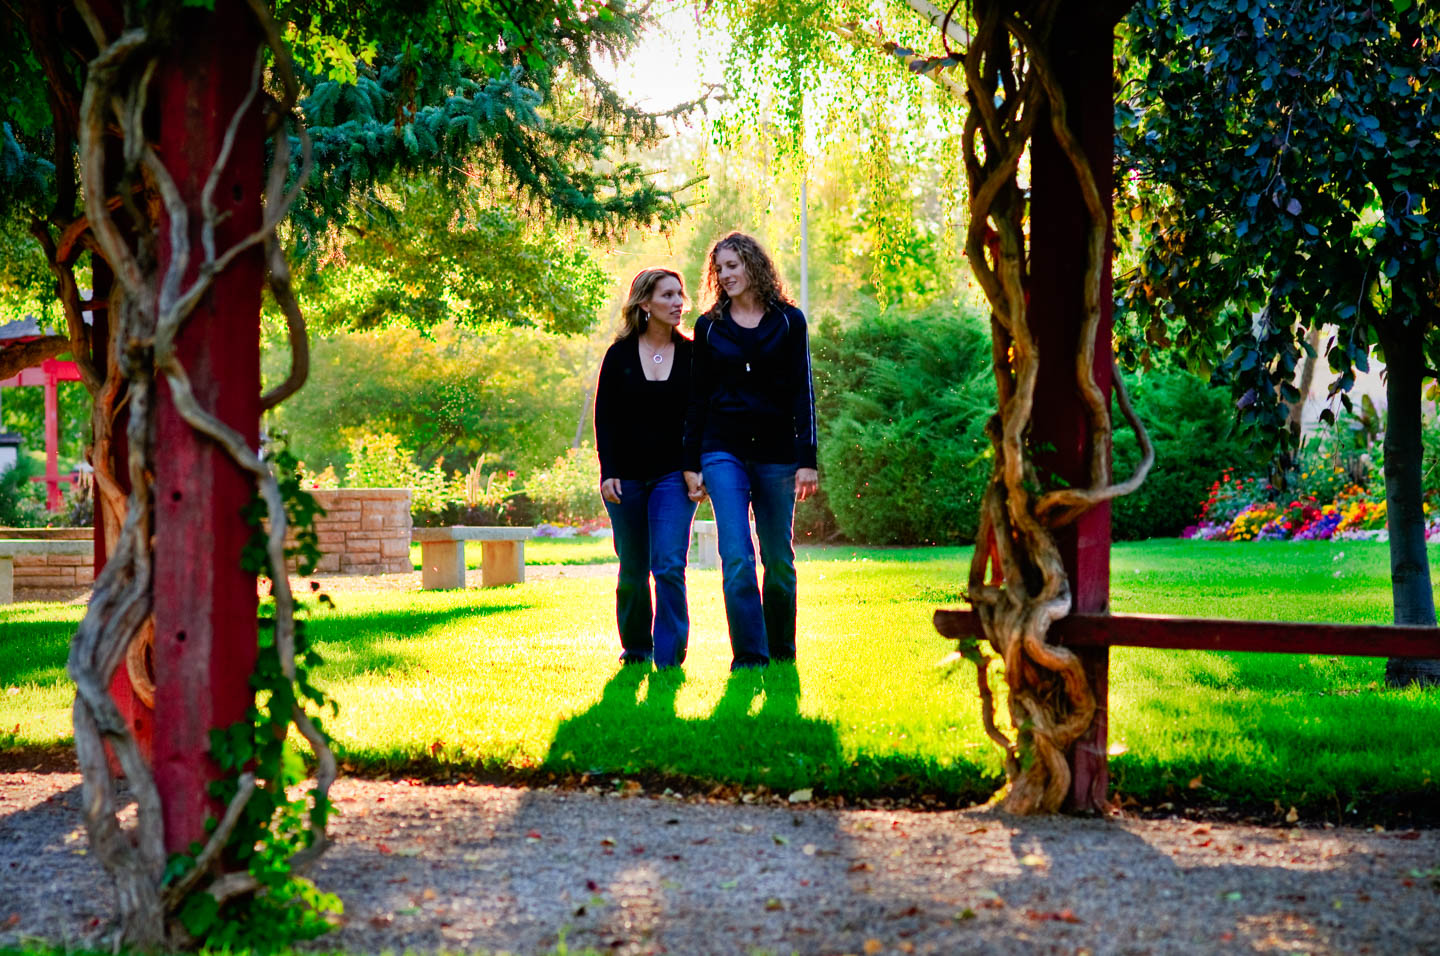 Amy and Julianne's engagement photos